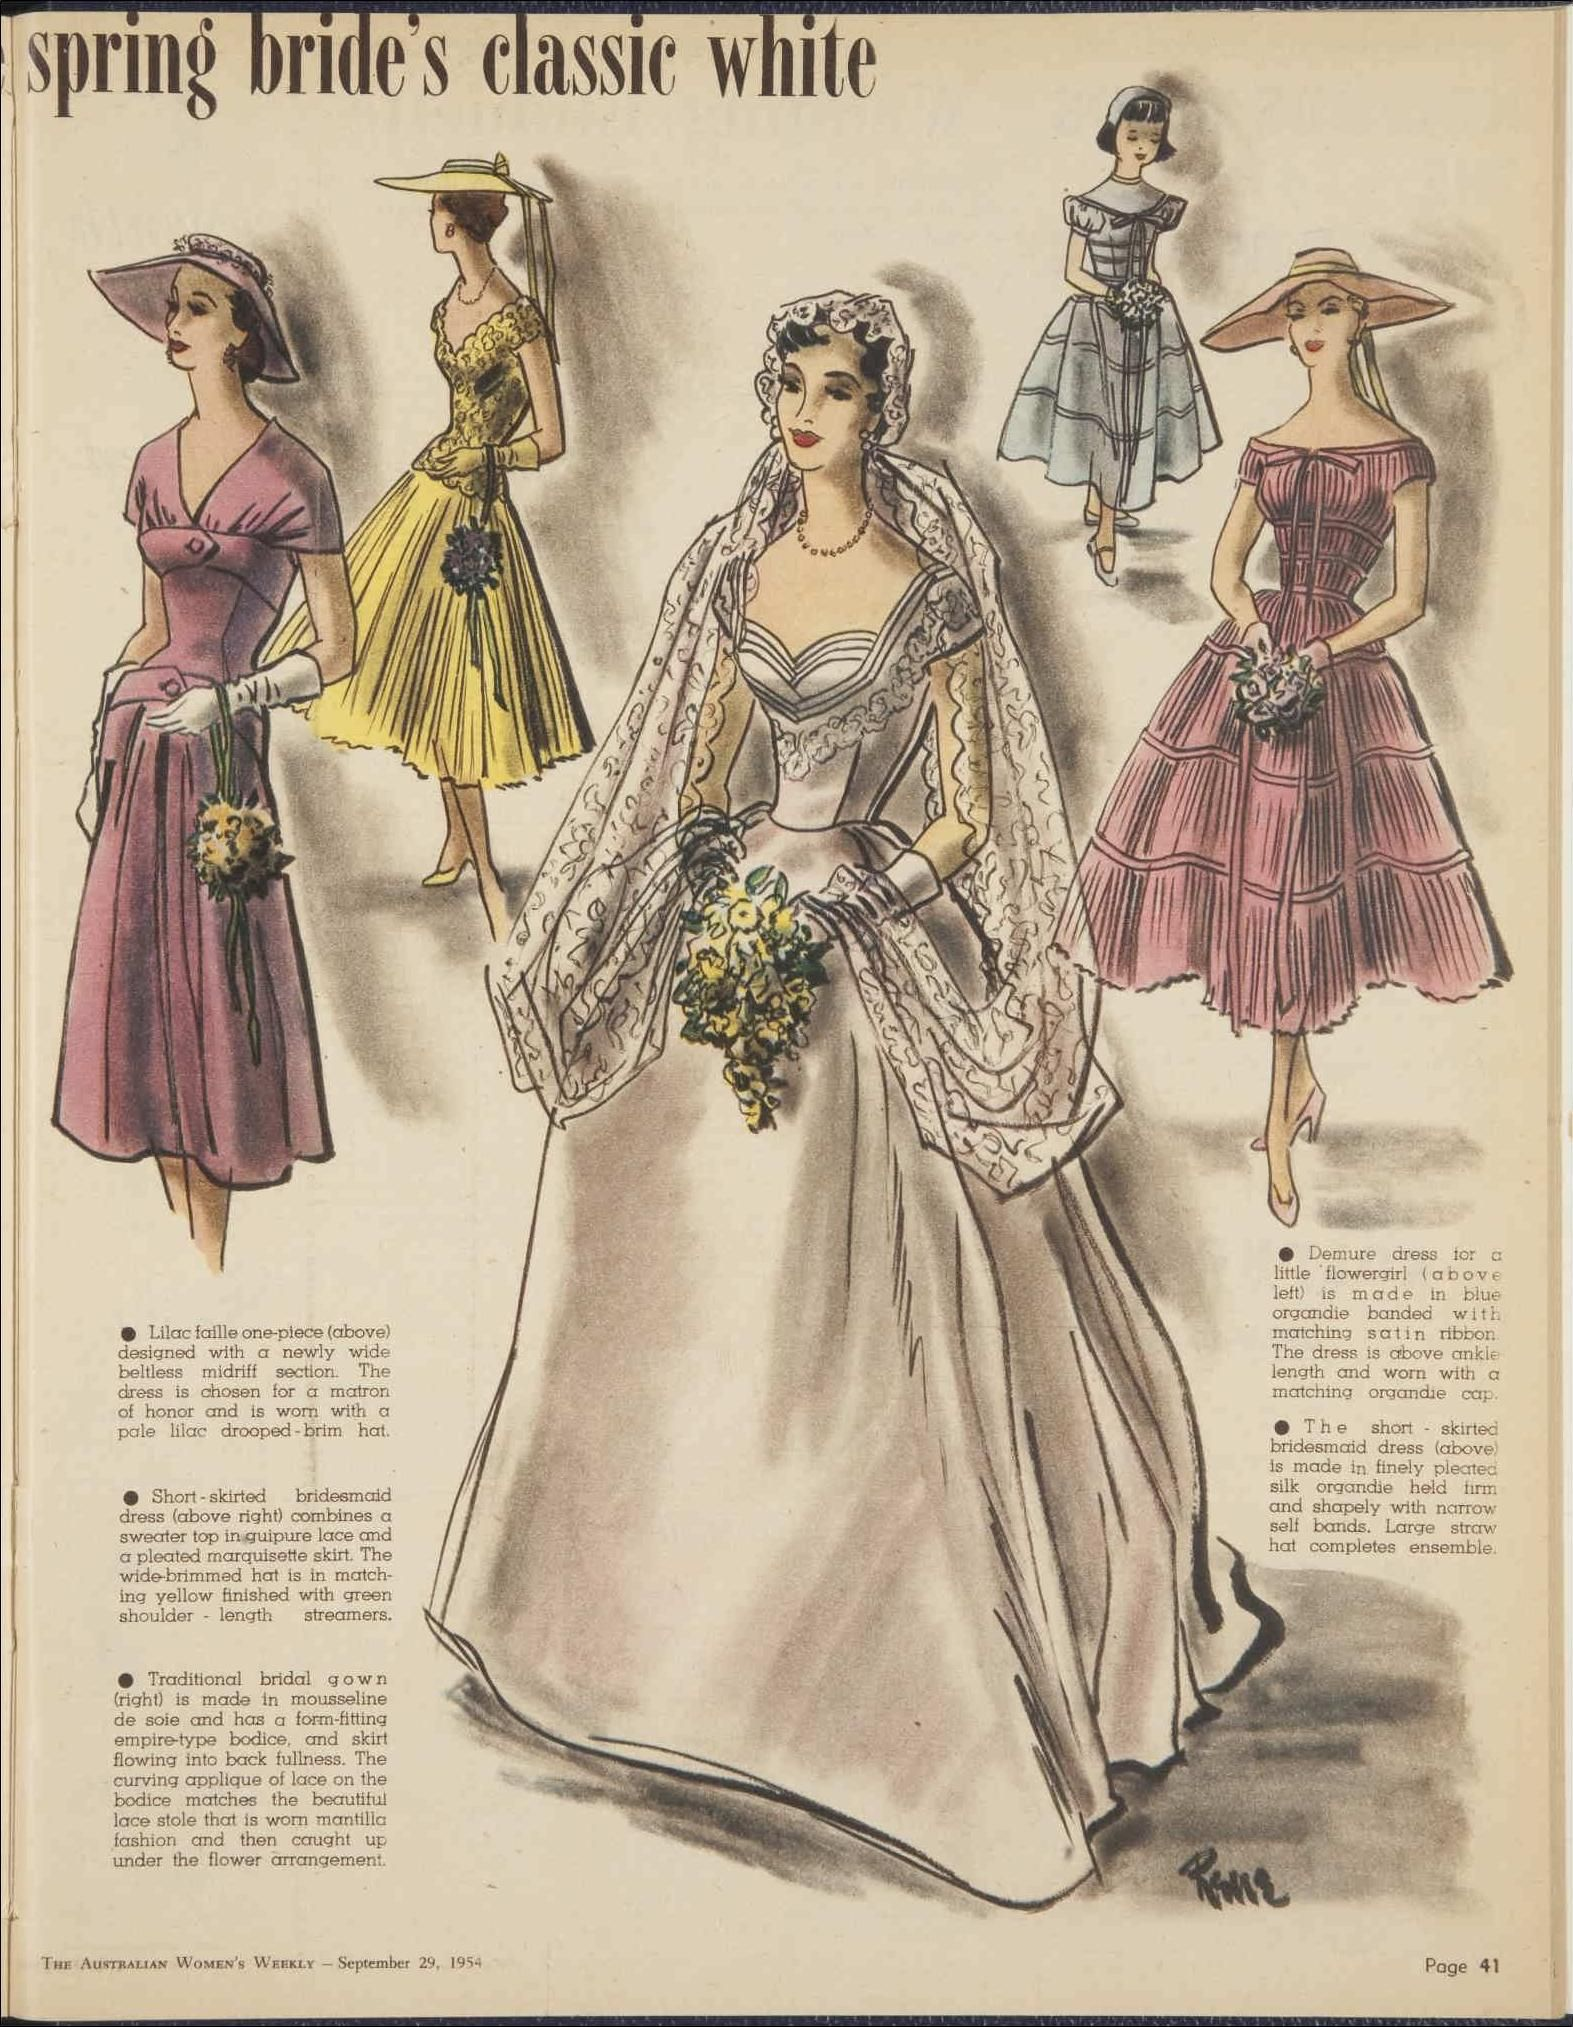 8158c77a3ab87 1950s vintage bride wedding dress Issue  29 Sep 1954 - The Australian  Women s Wee.